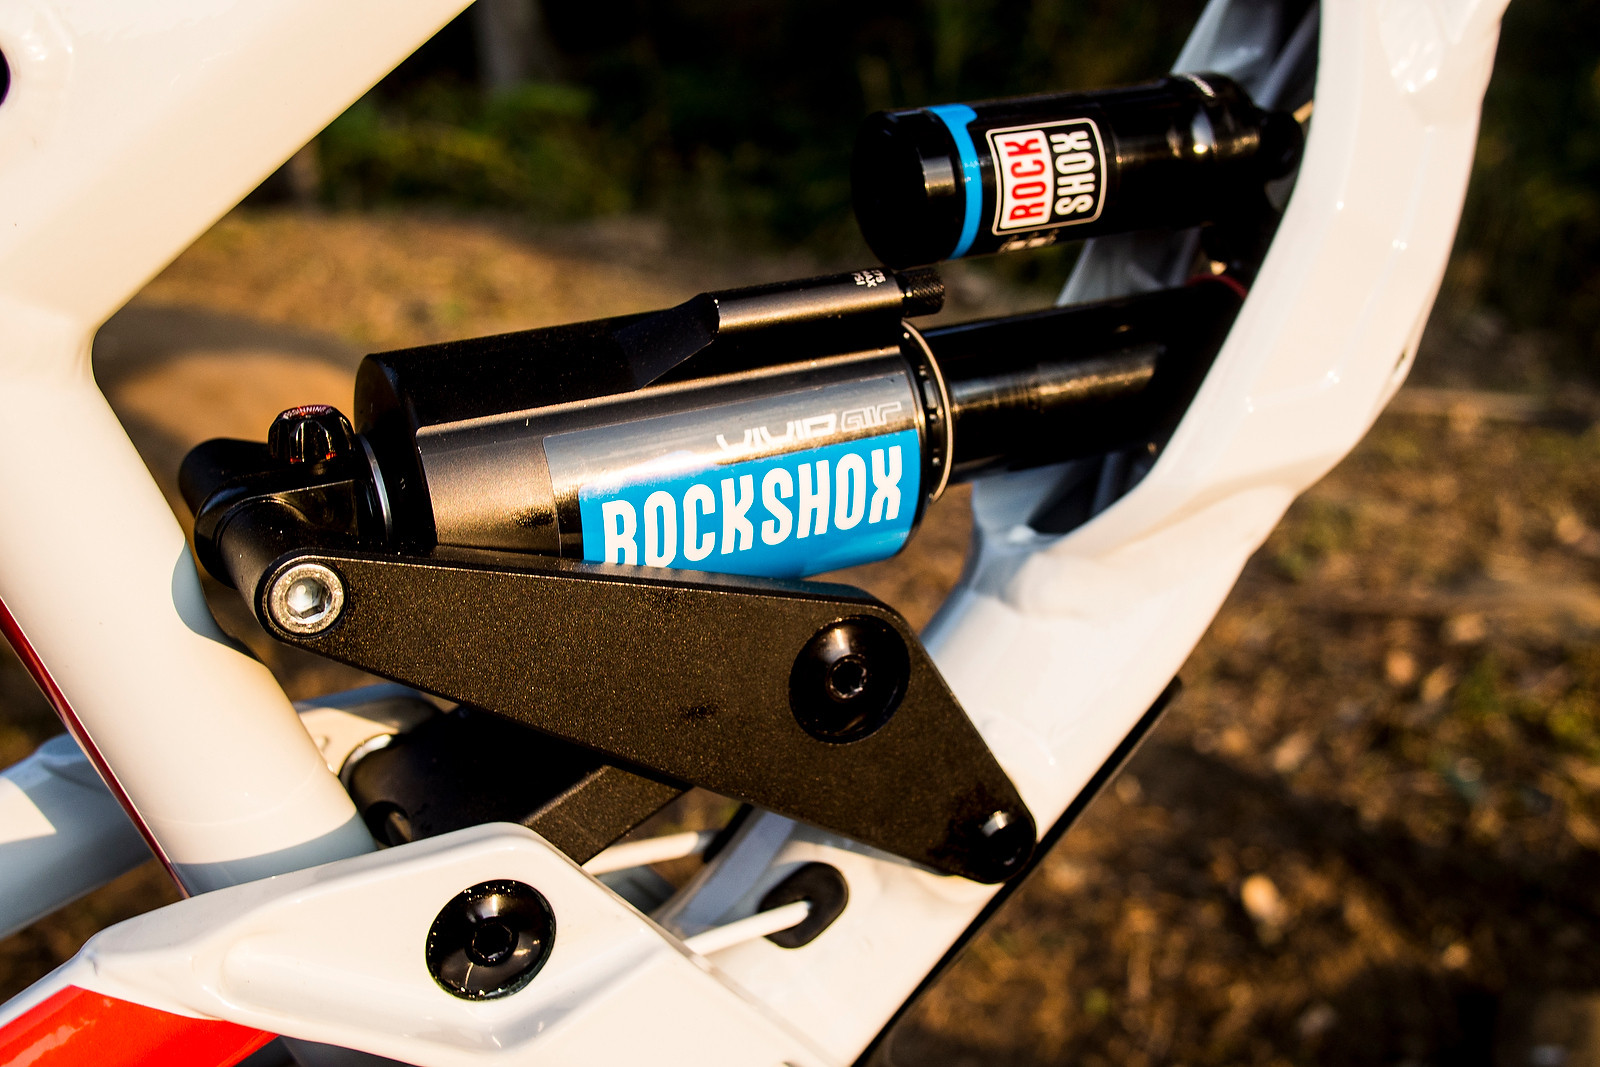 RockShox Vivid Air on Emmeline Ragot's World Champs Bike - WORLD CHAMPS BIKE - Emmeline Ragot's Lapierre DH 720 - Mountain Biking Pictures - Vital MTB